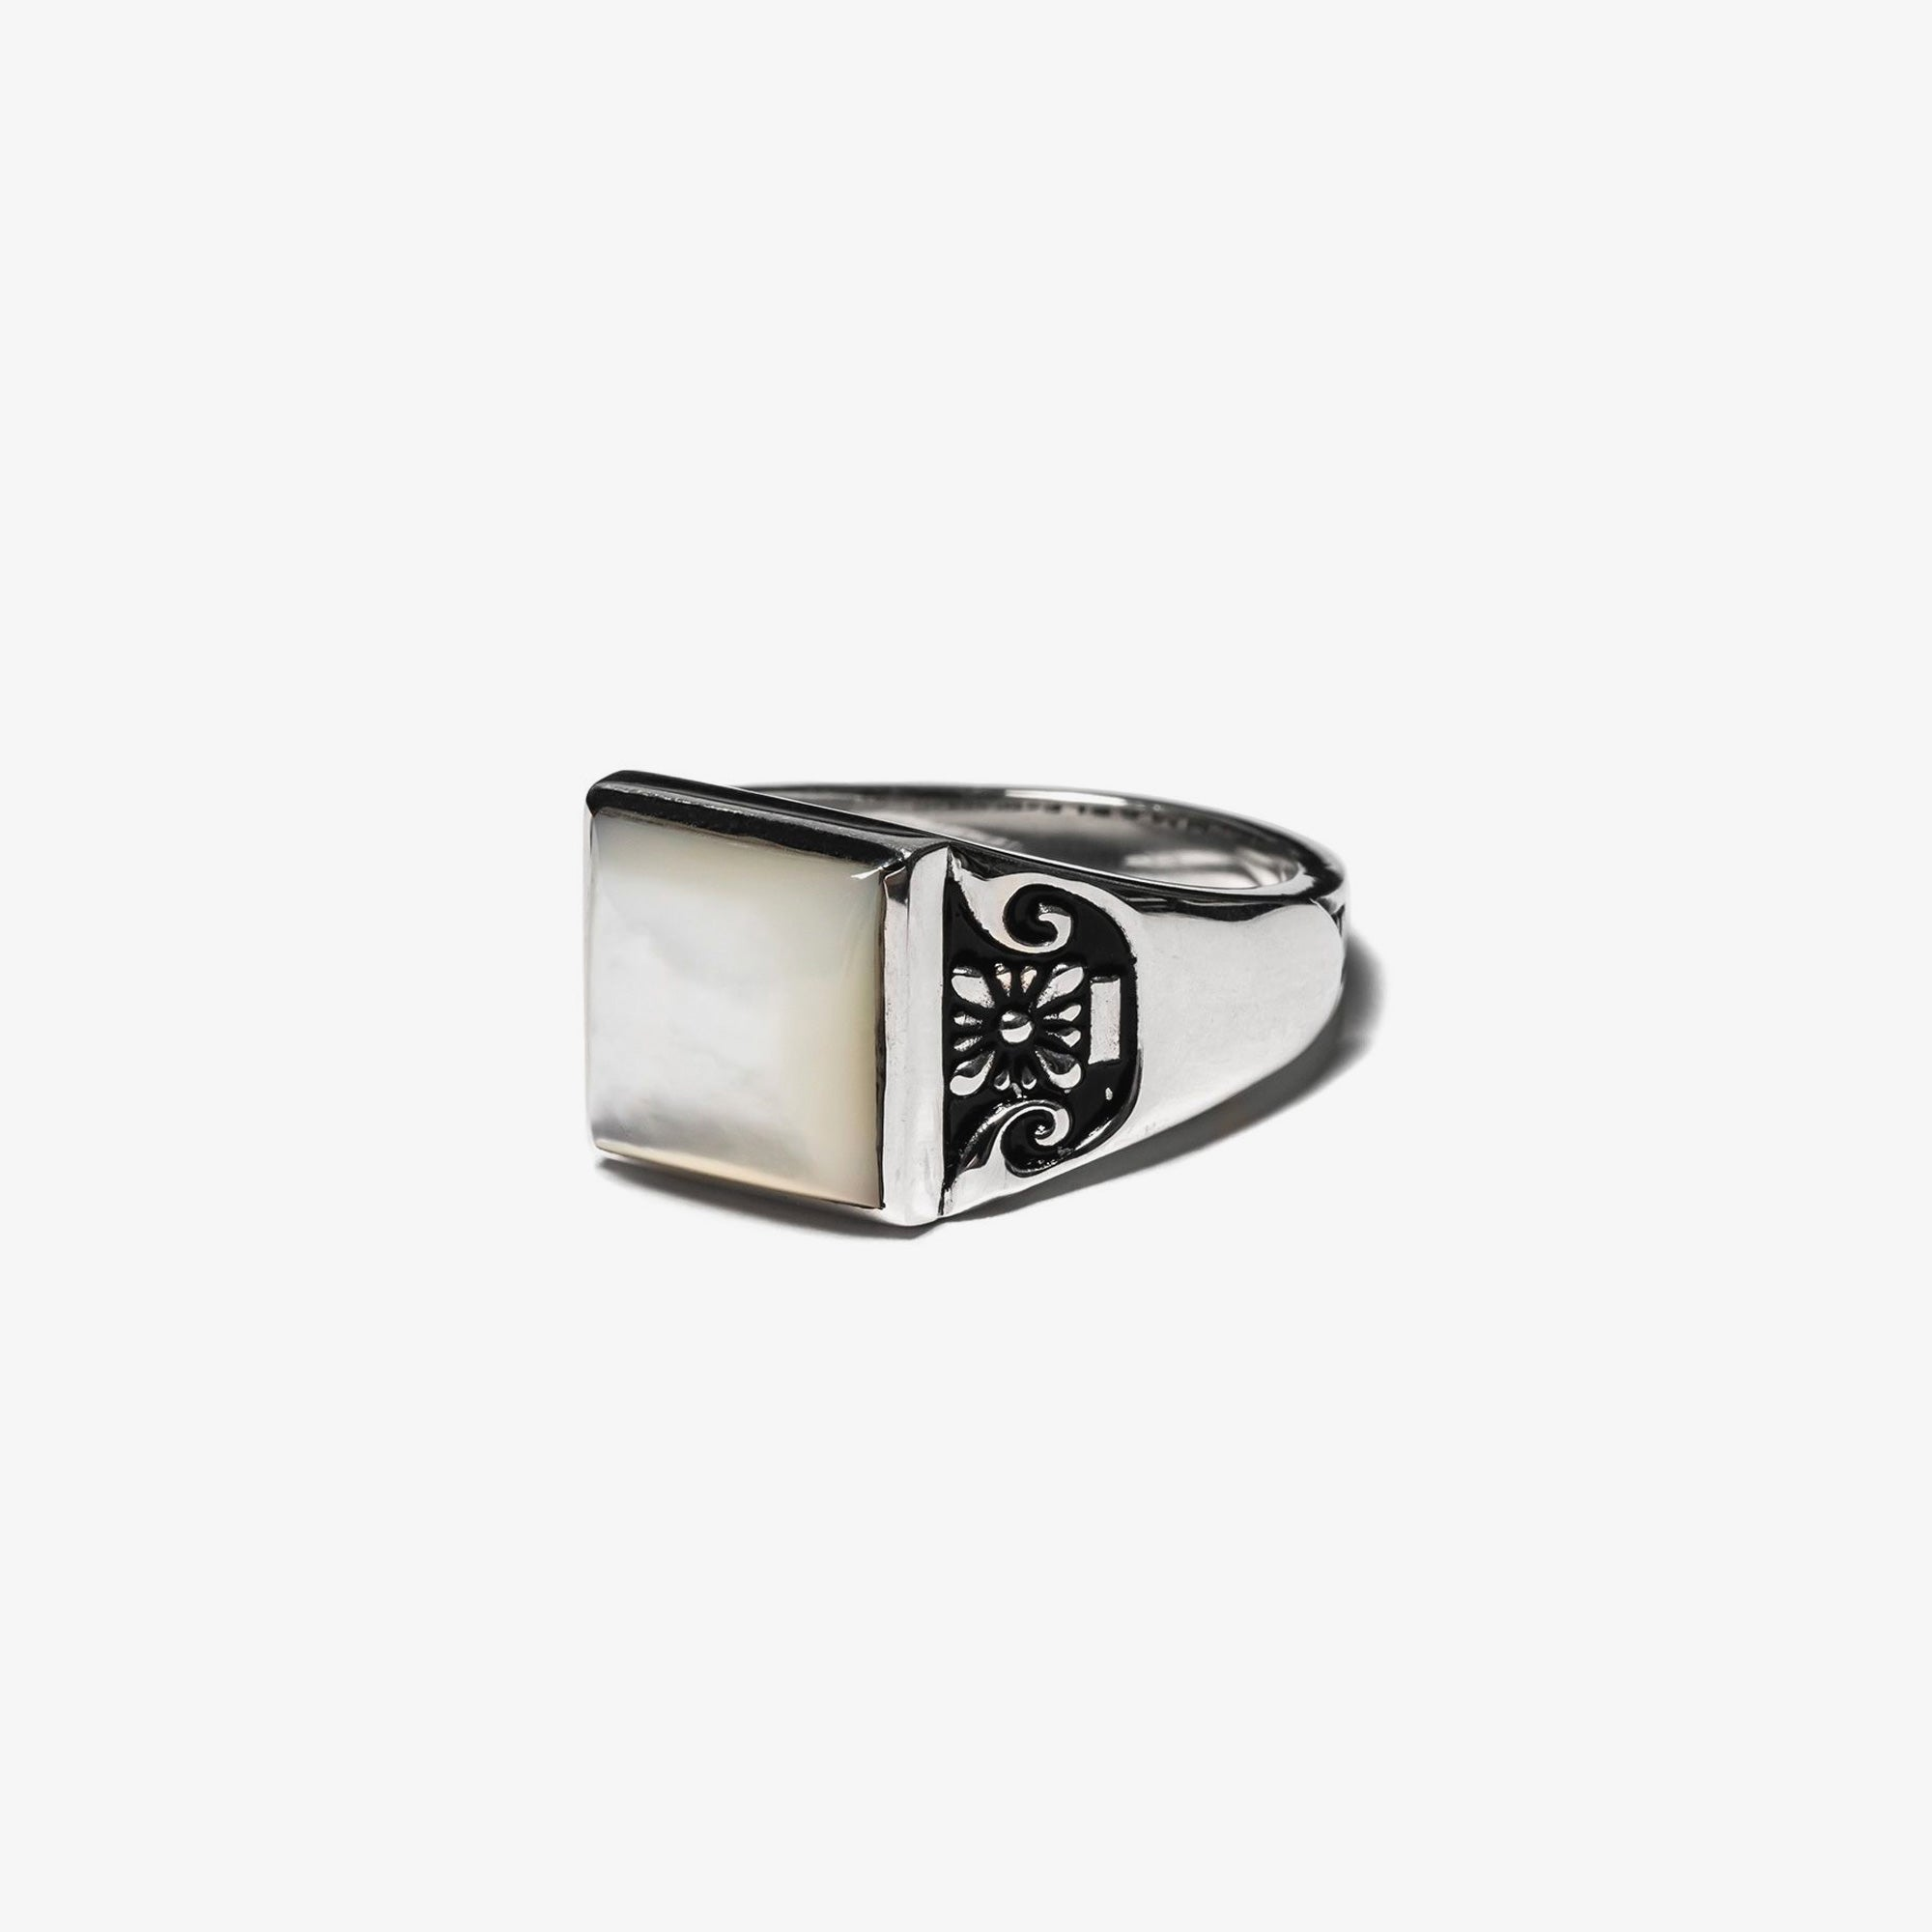 Maple Collegiate Ring Blank - Mother of Pearl / Silver 925 2